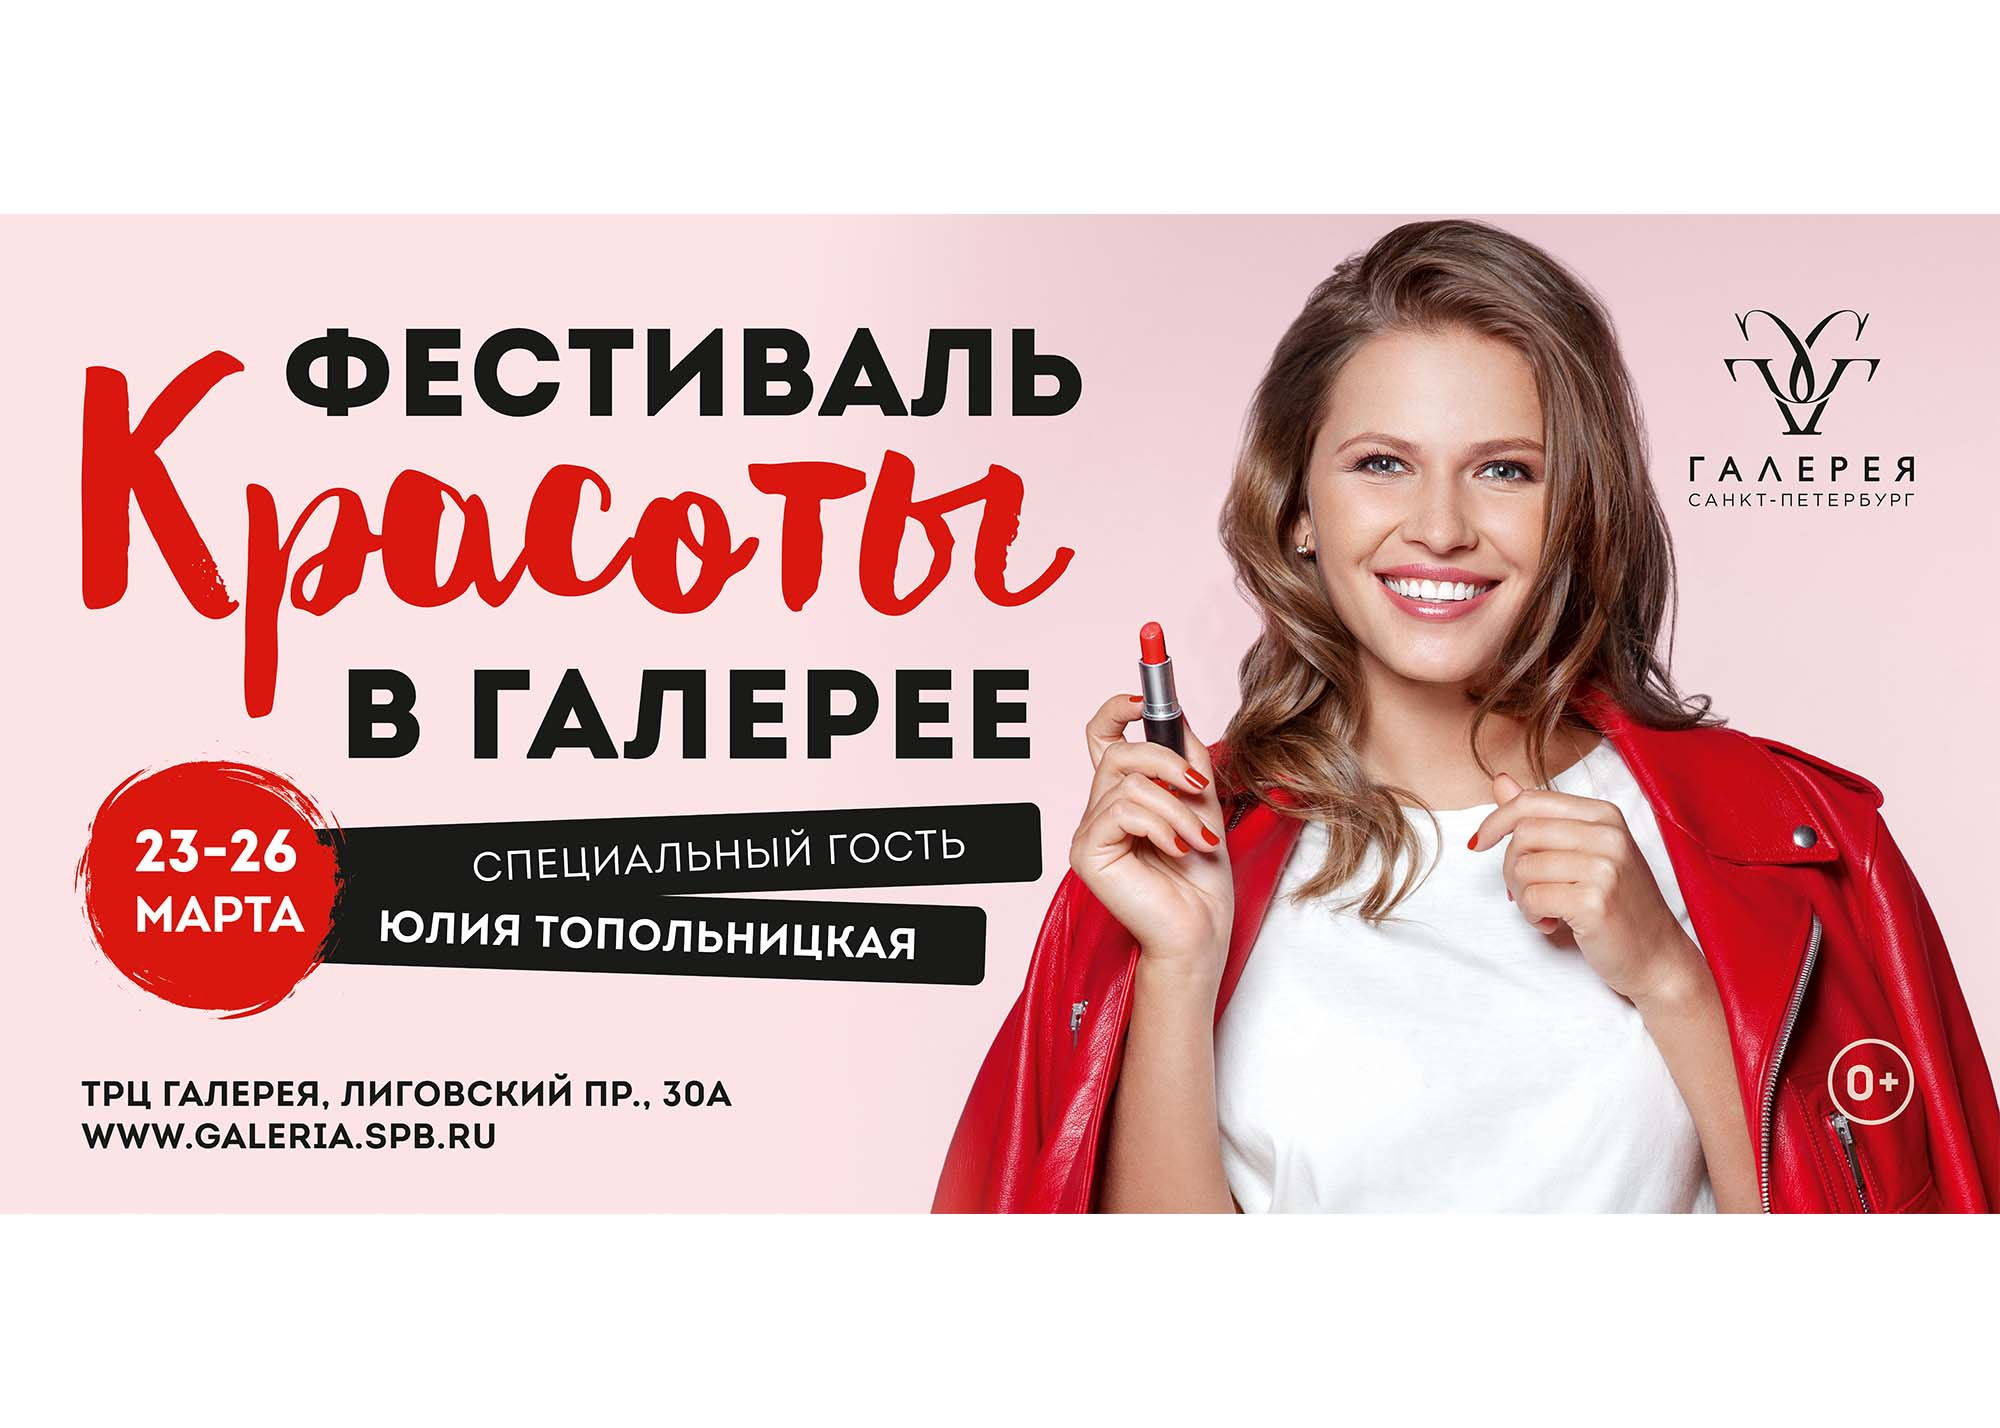 ЕВГЕНИЯ ВОРОНОВА – Galeria Beauty Week with Julia Topolnitskaya – EVGENIA VORONOVA